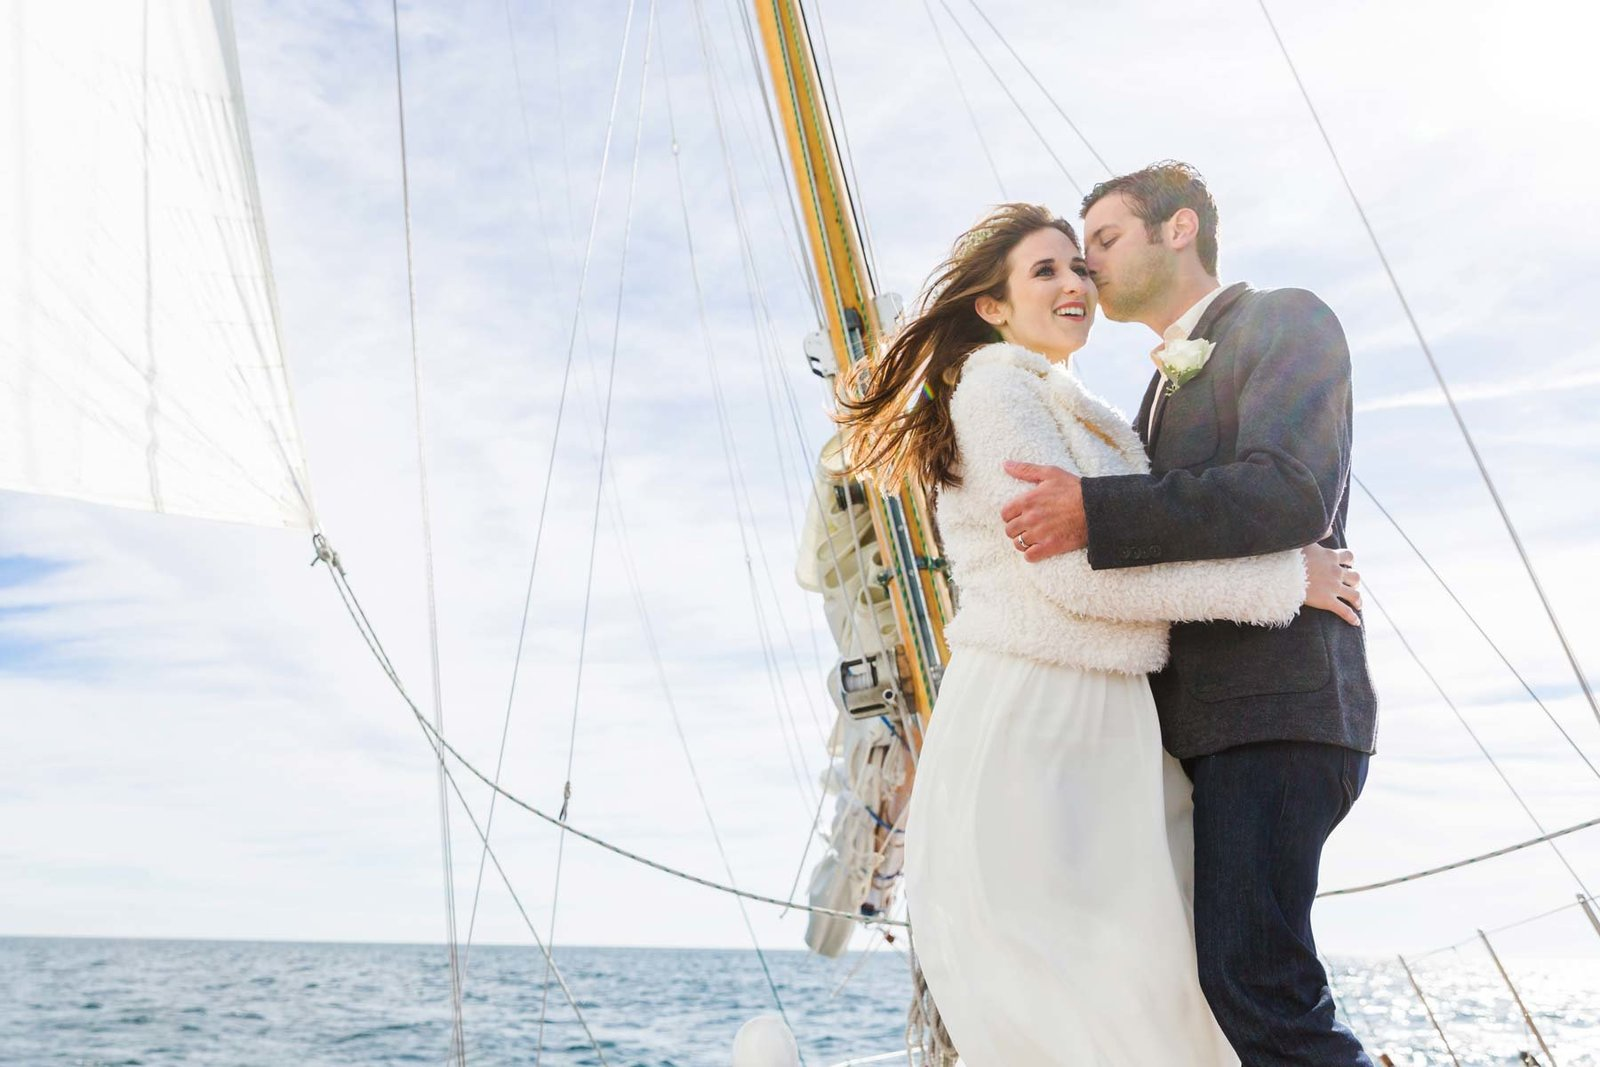 Ogunquit Maine elopement on Silver Linings Sailboat on the water